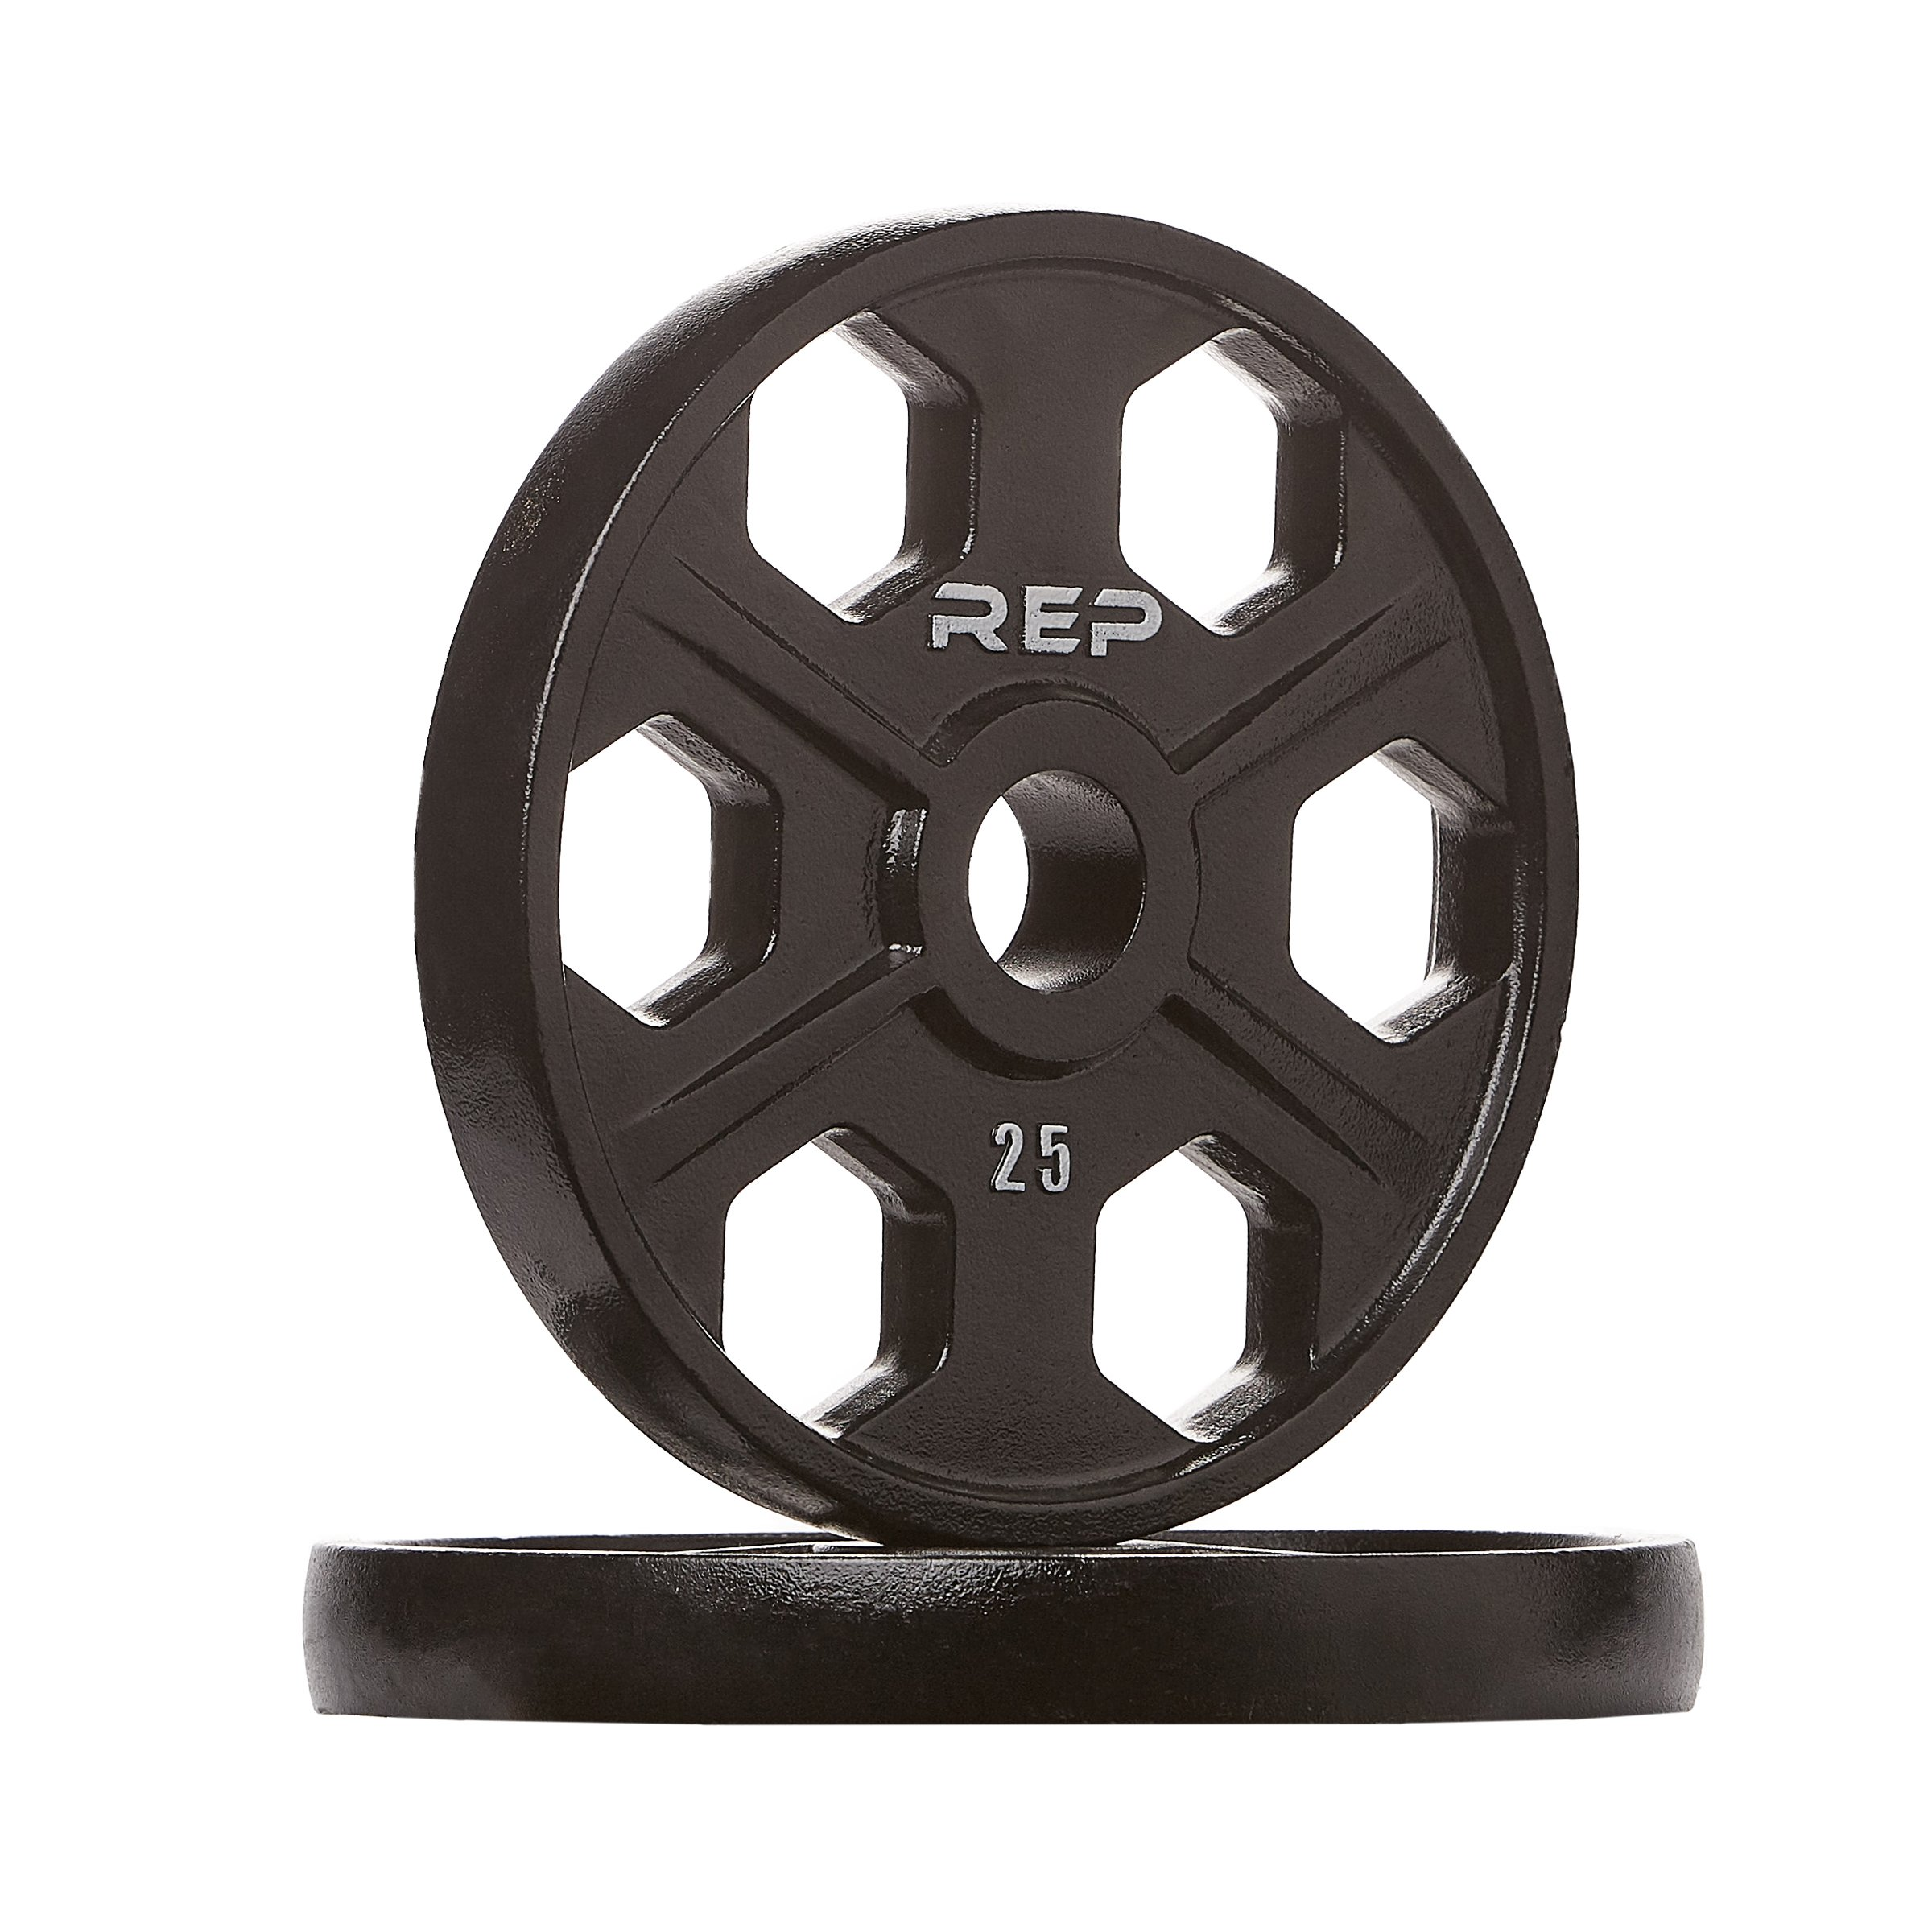 Rep Fitness Rep Black Equalizer Iron Olympic Plates, 25 lb Pair